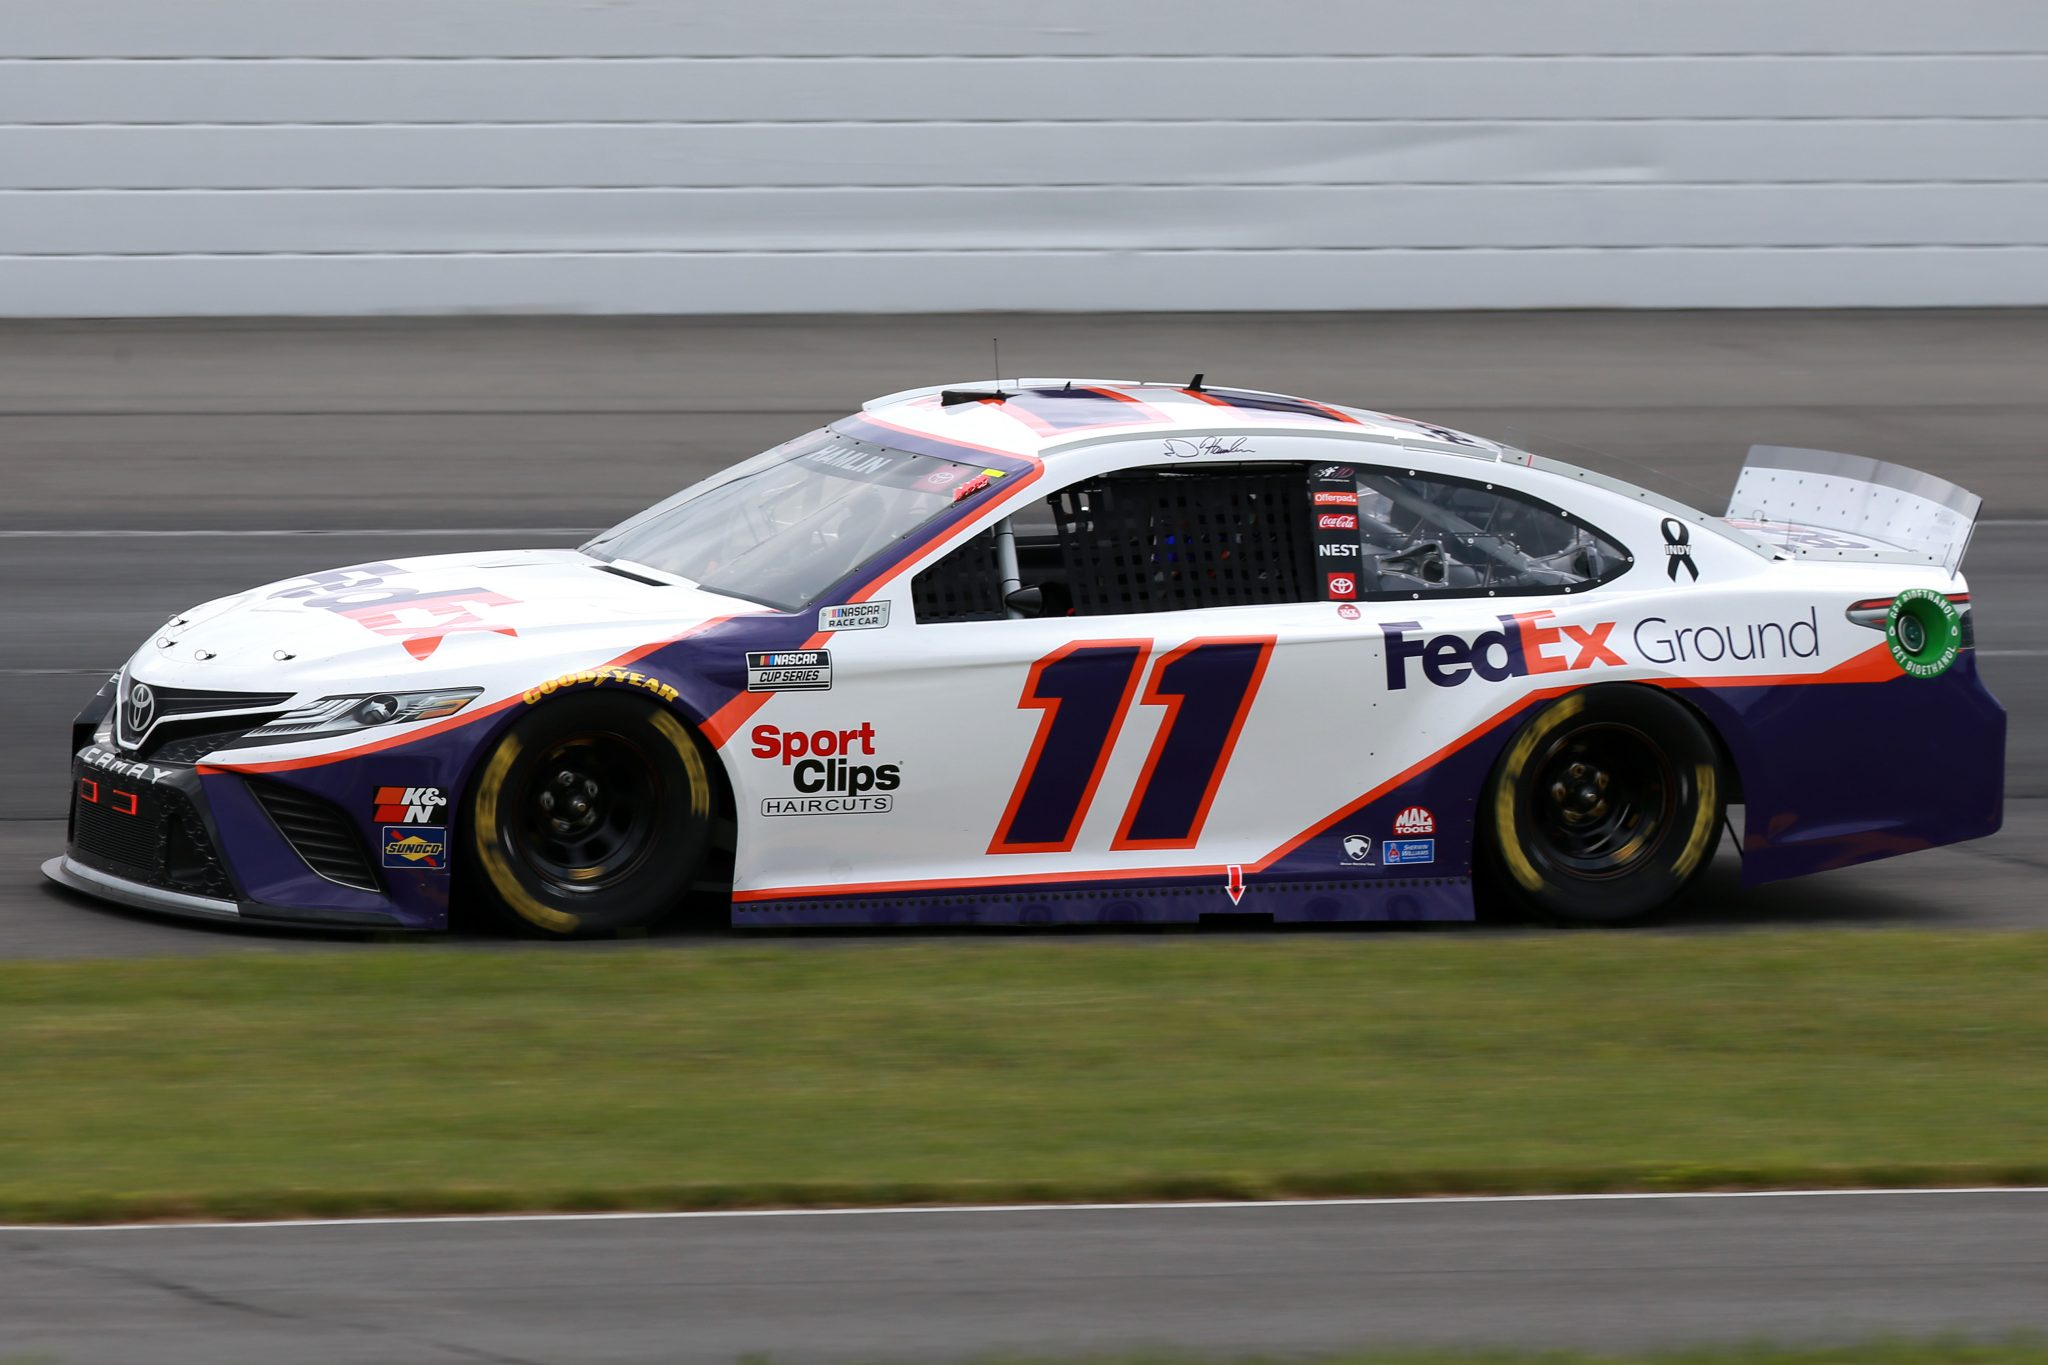 LONG POND, PENNSYLVANIA - JUNE 26: Denny Hamlin, driver of the #11 FedEx Ground Toyota, drives during the NASCAR Cup Series Pocono Organics CBD 325 at Pocono Raceway on June 26, 2021 in Long Pond, Pennsylvania. (Photo by Sean Gardner/Getty Images)   Getty Images